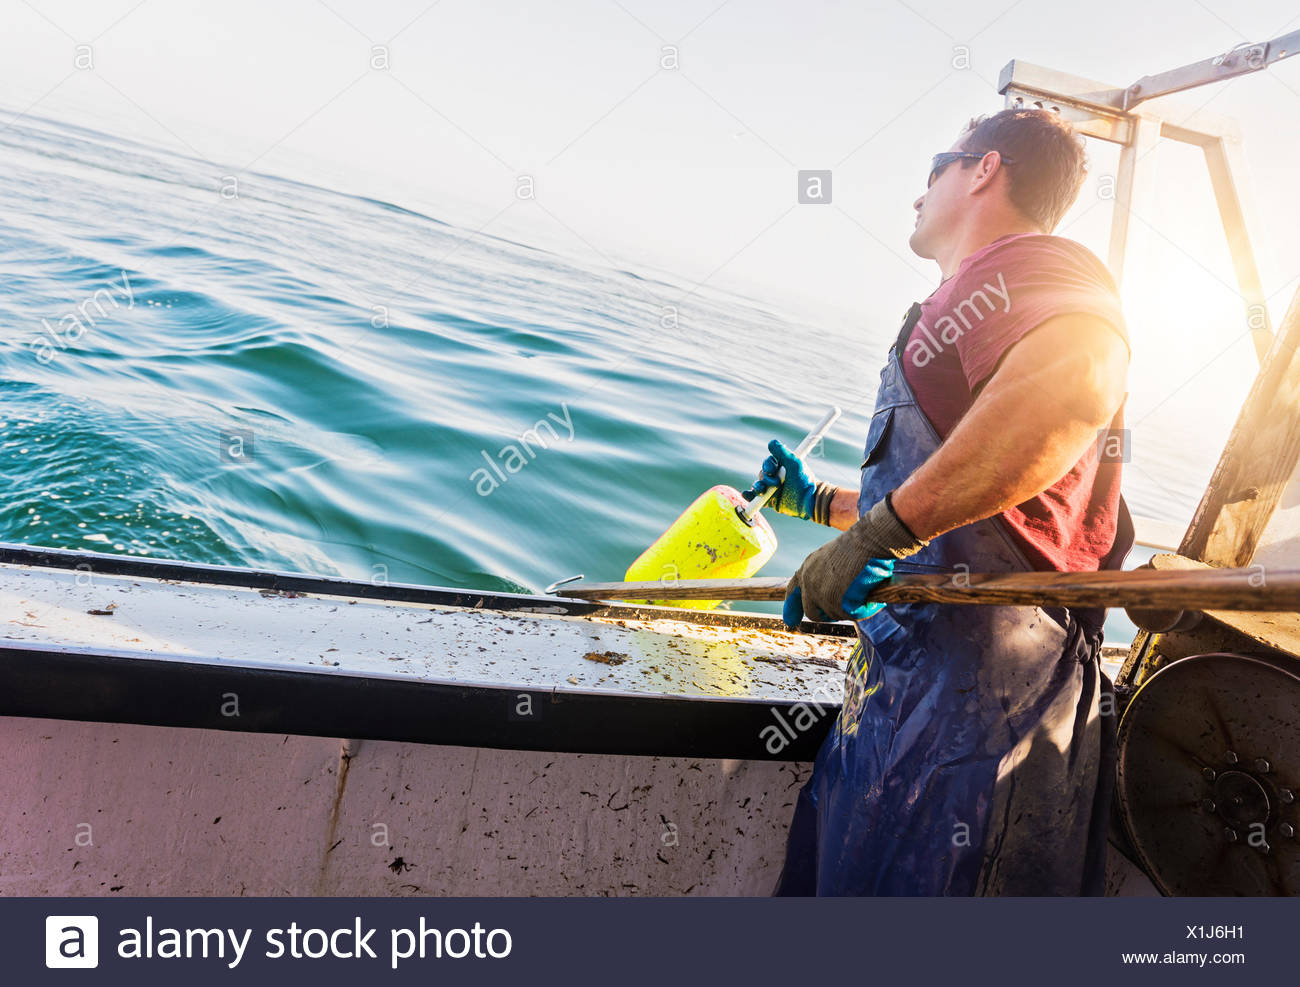 Fisherman throwing lobster buoy - Stock Image